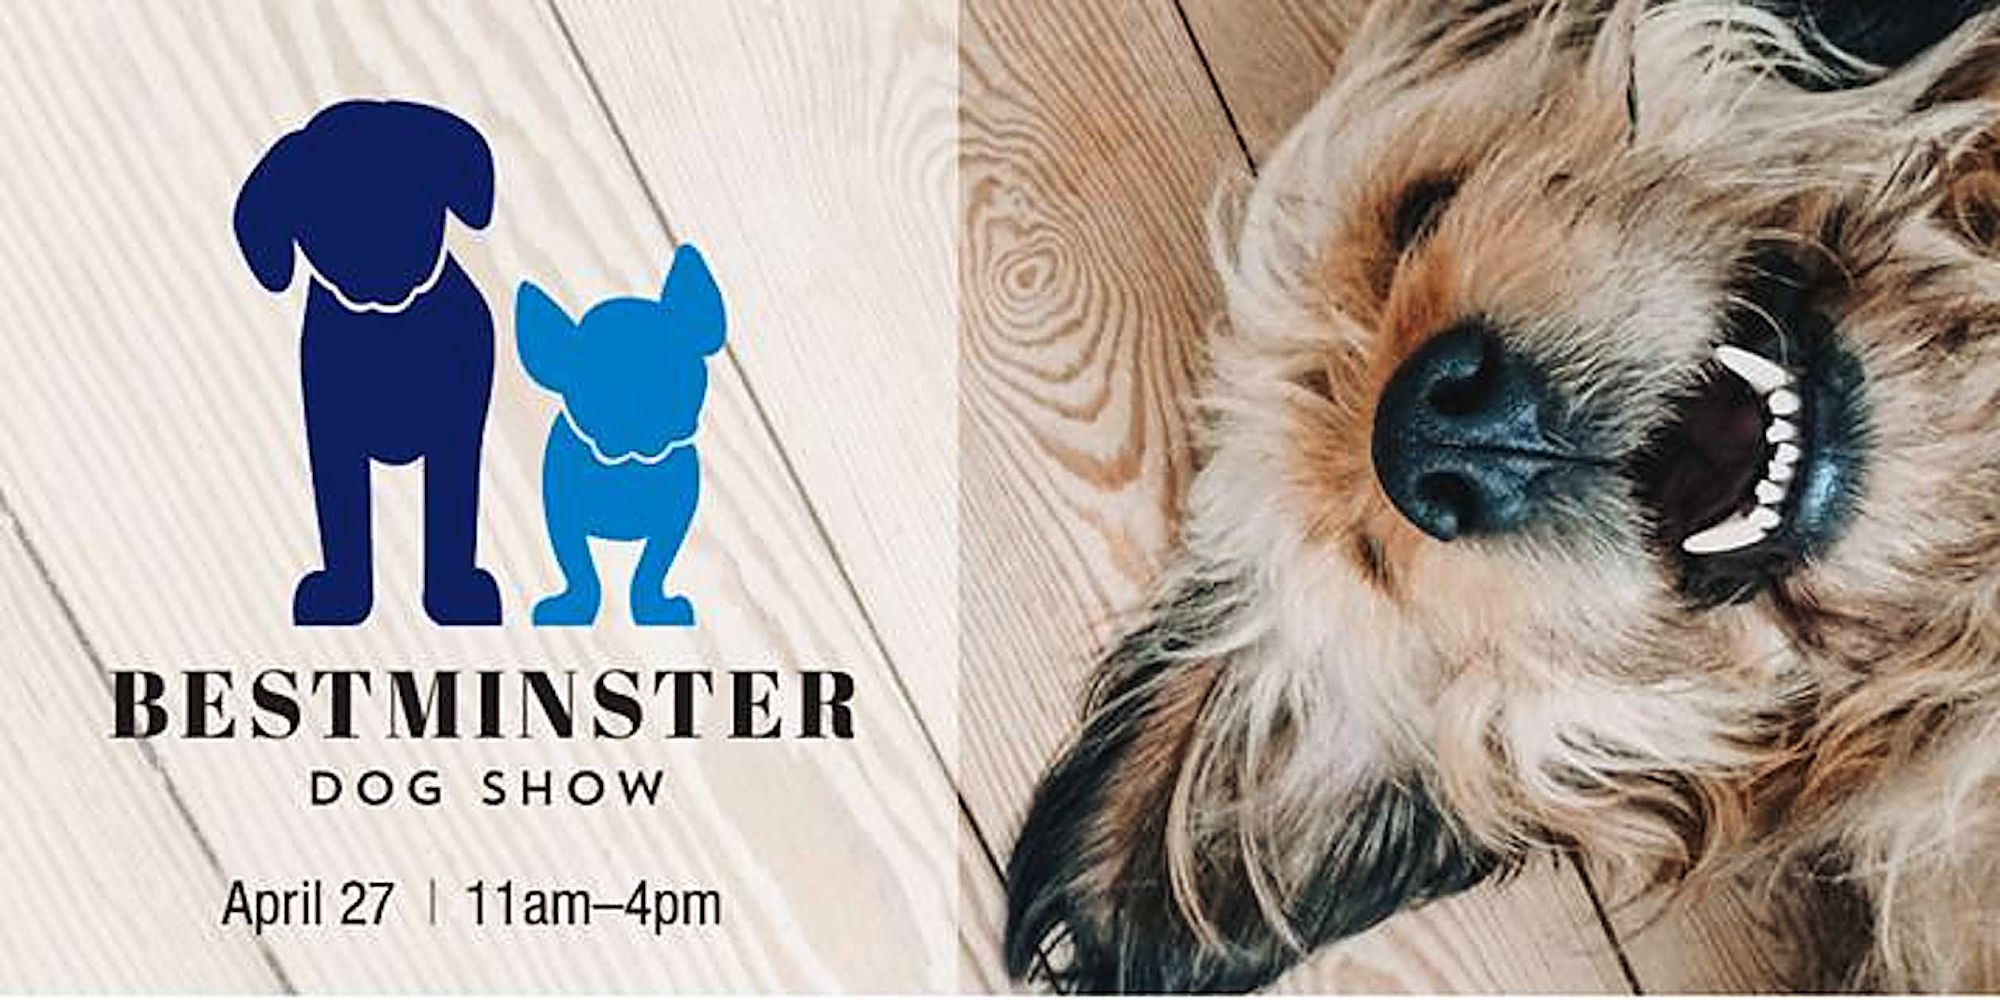 Bestminster makes its dog show debut